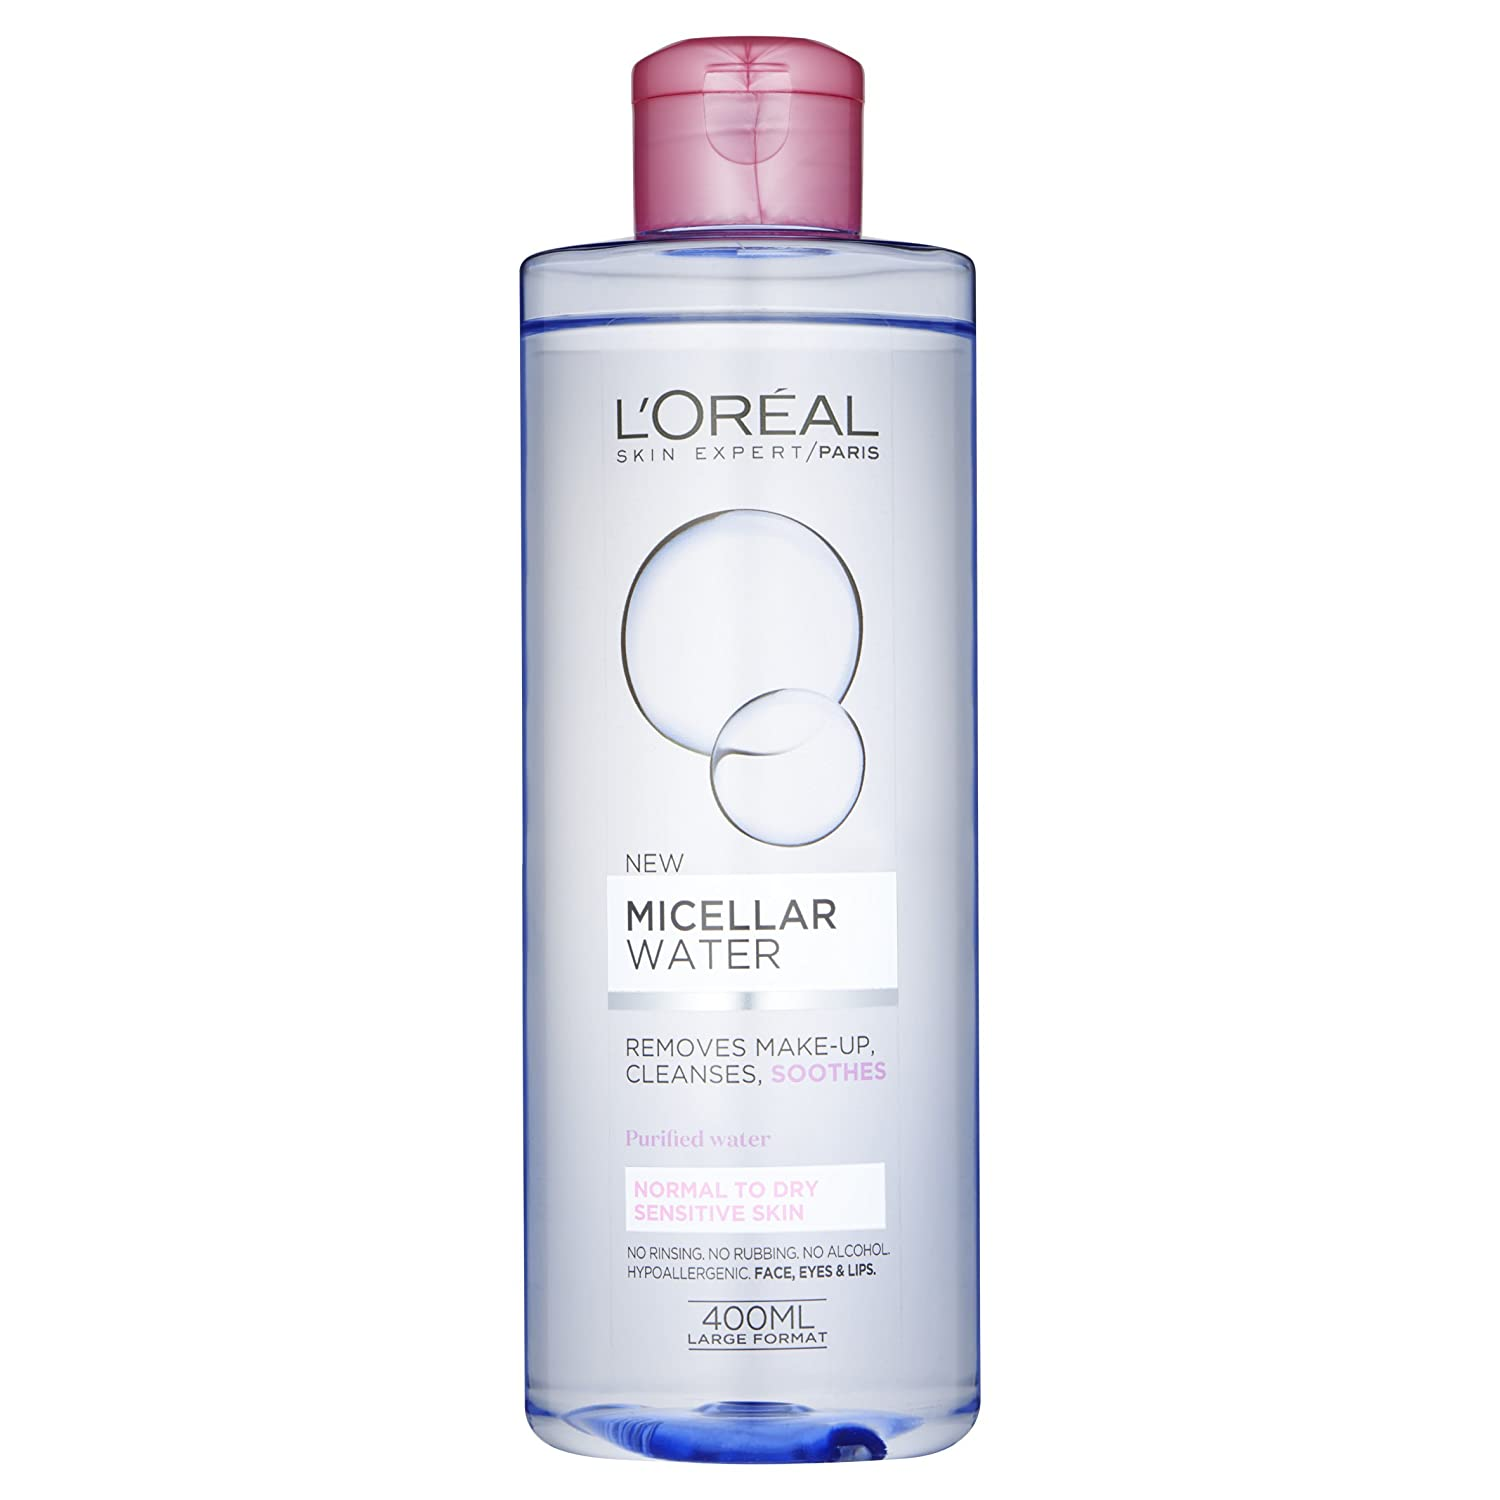 Agua micelar L Oreal Paris para piel sensible, normal y seca 400 ml: Amazon.es: Belleza